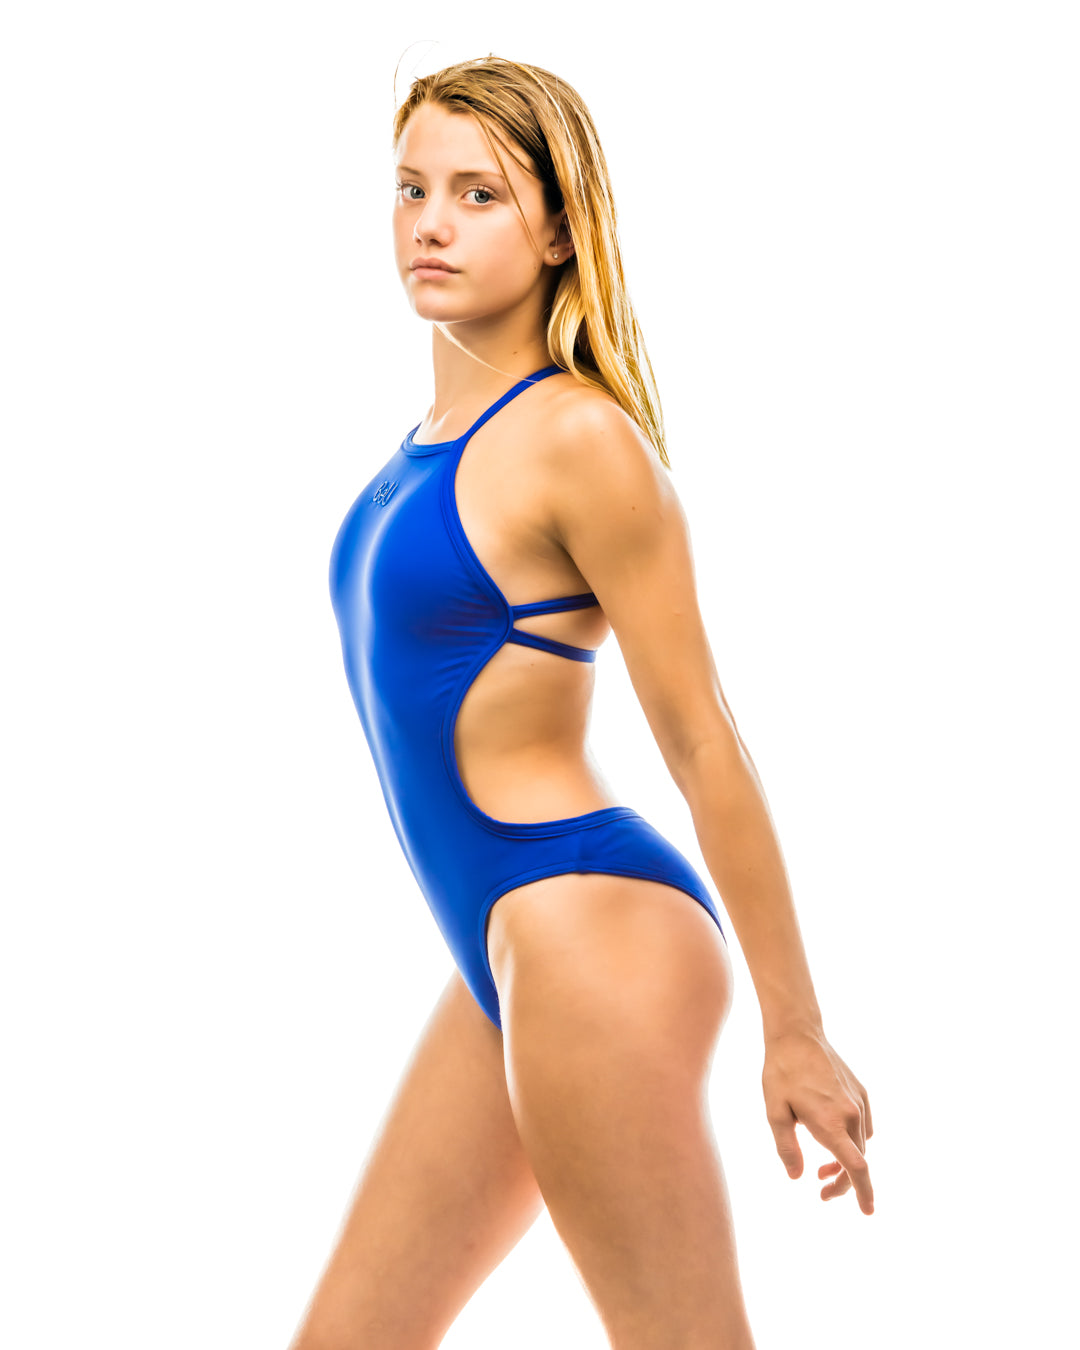 SeaChange Swimsuit in Ocean Blue (open back)